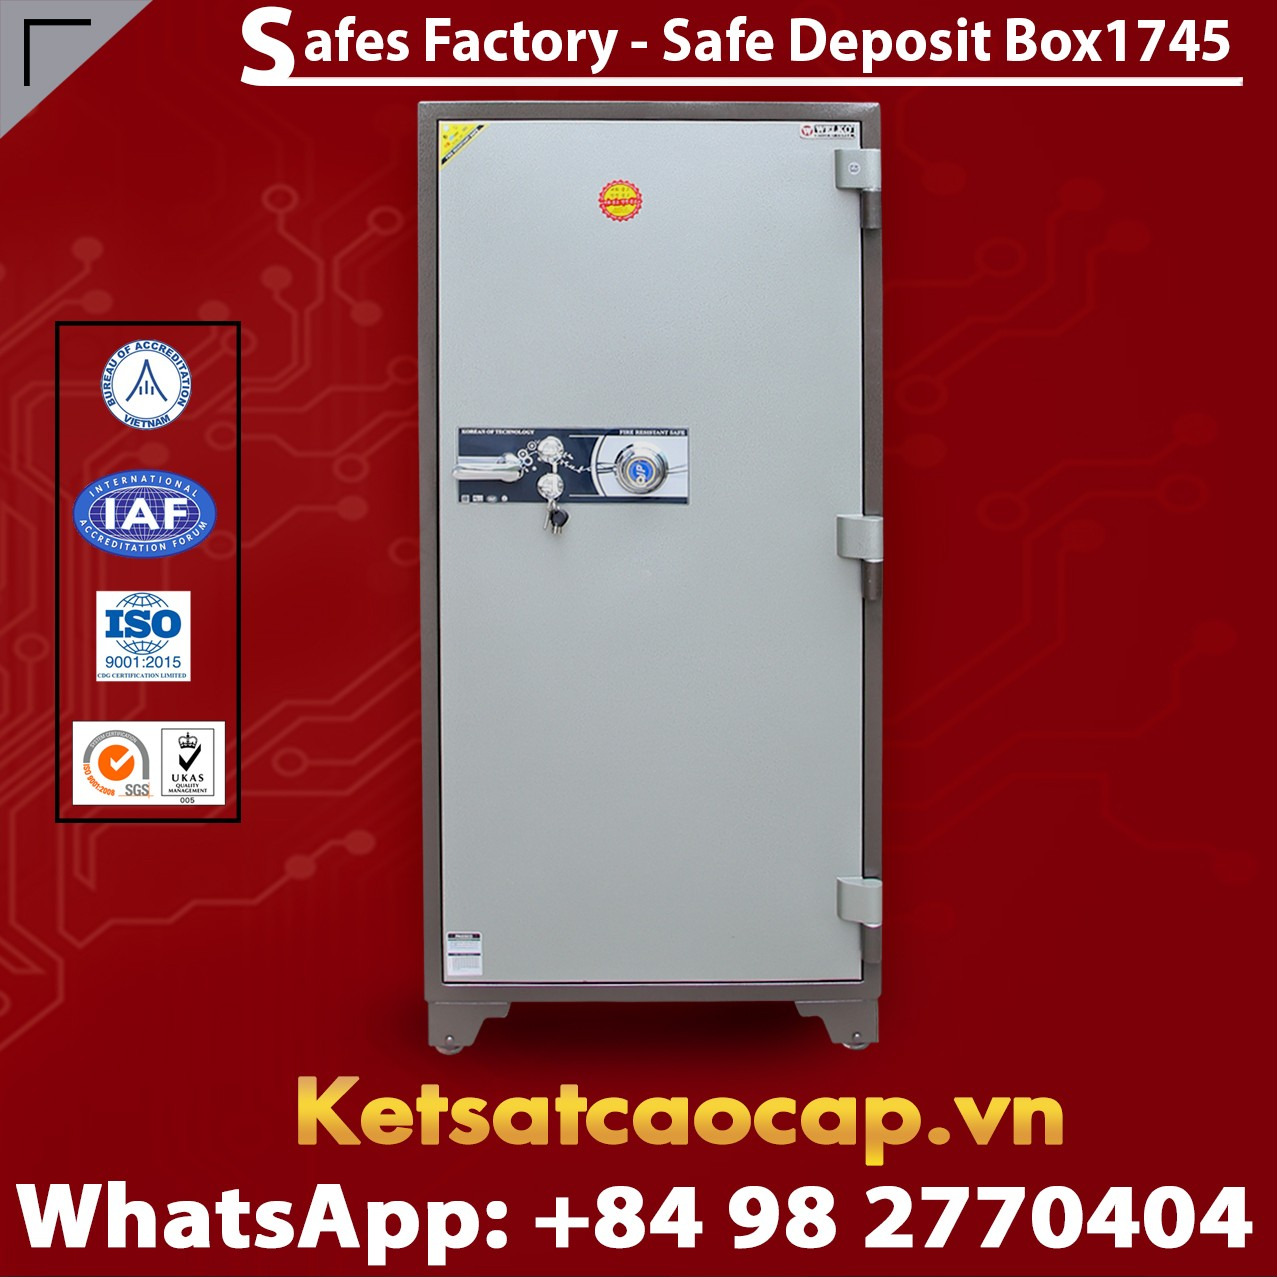 Bank Deposit Safes LX1745 Newest Design Secure For Bank